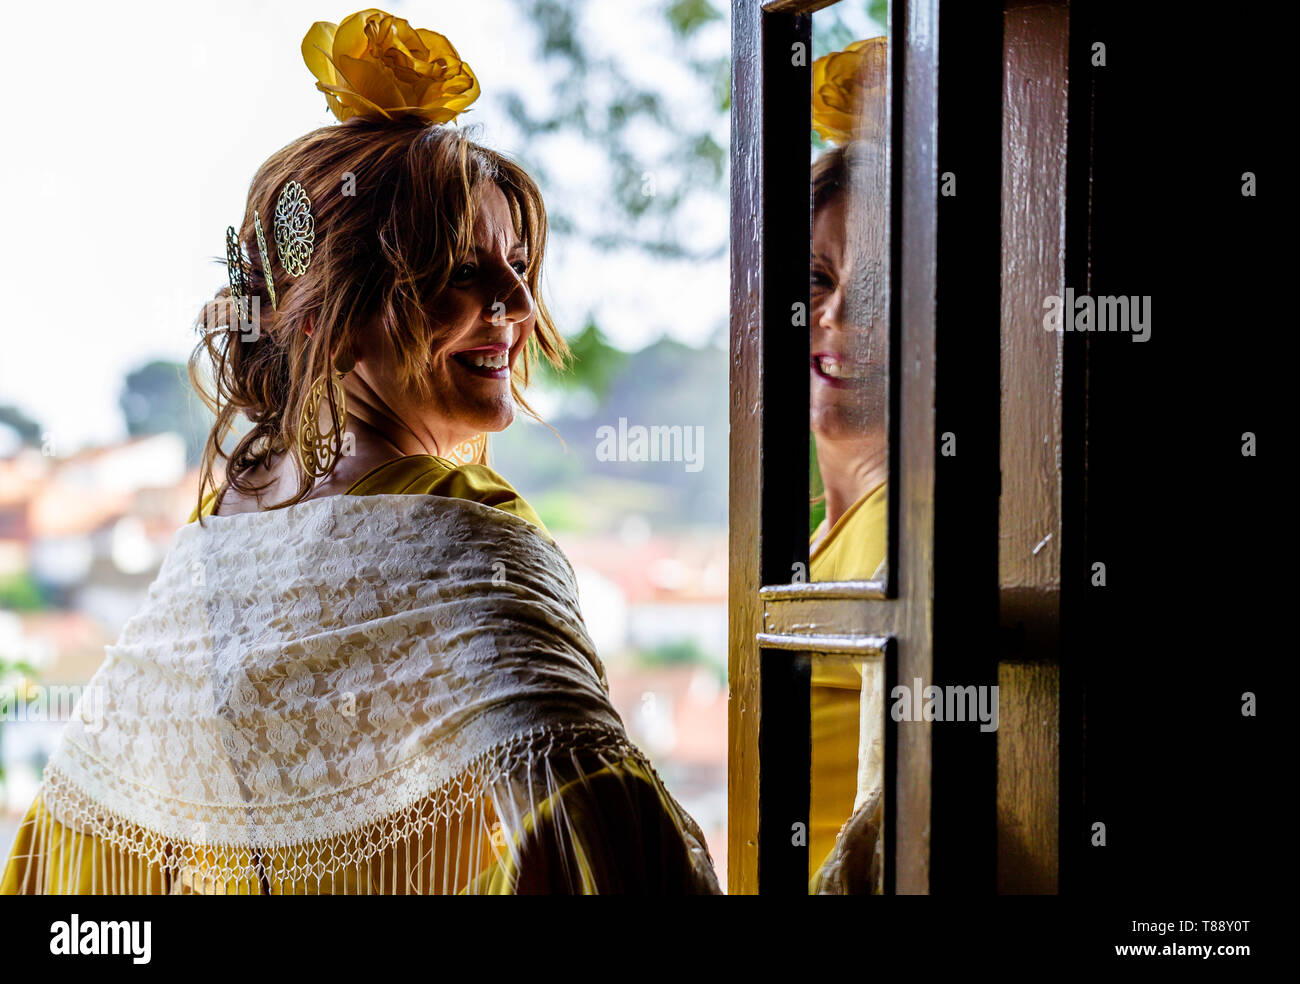 A Spanish woman wearing a bright yellow traditional flamenco style dress in Andalusia standing in front of a door and reflecting the face in the glass - Stock Image